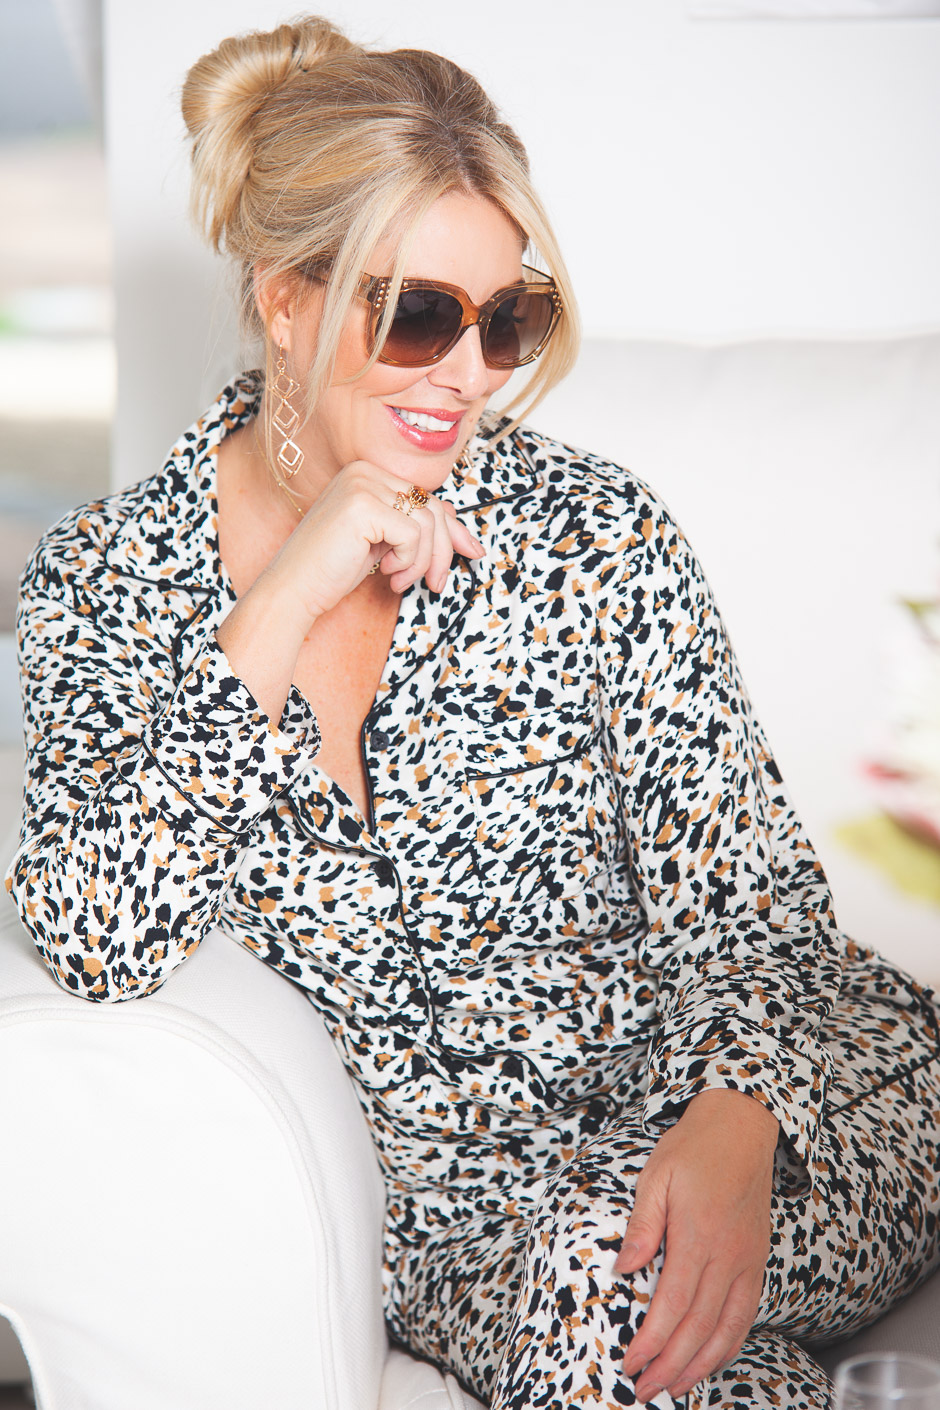 'What I am Wearing' Summer Edition - The Pyjama Trend from Off The Rails Fashionista